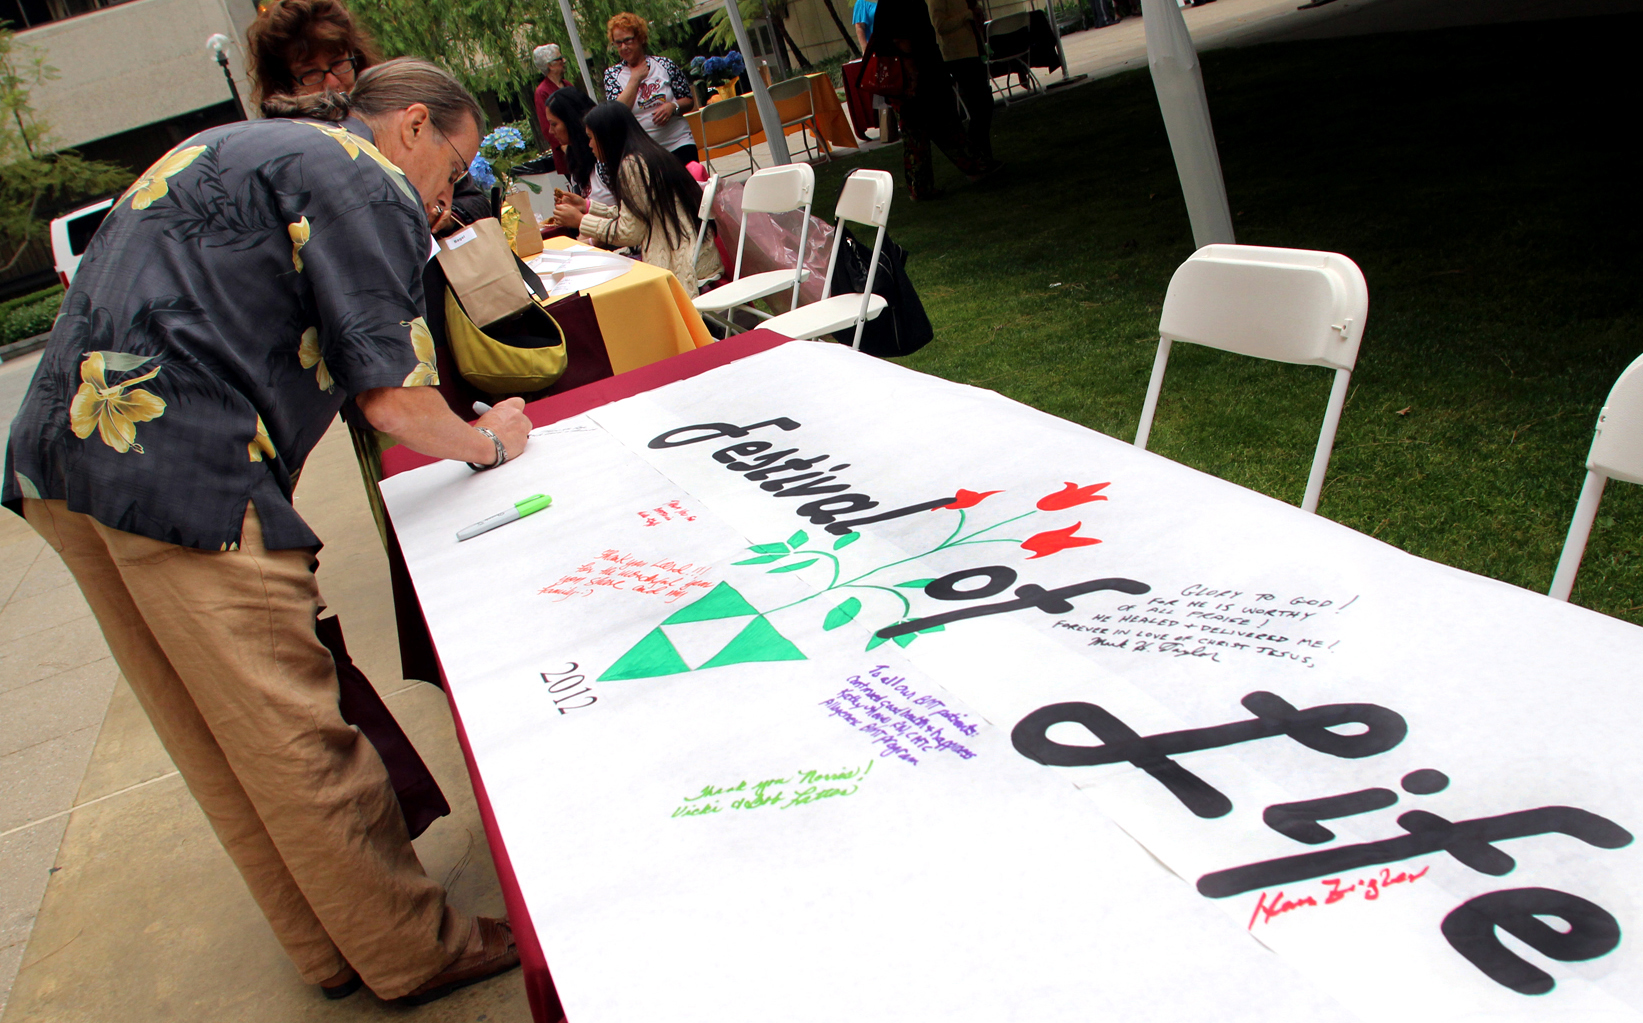 Participant signs a scroll.